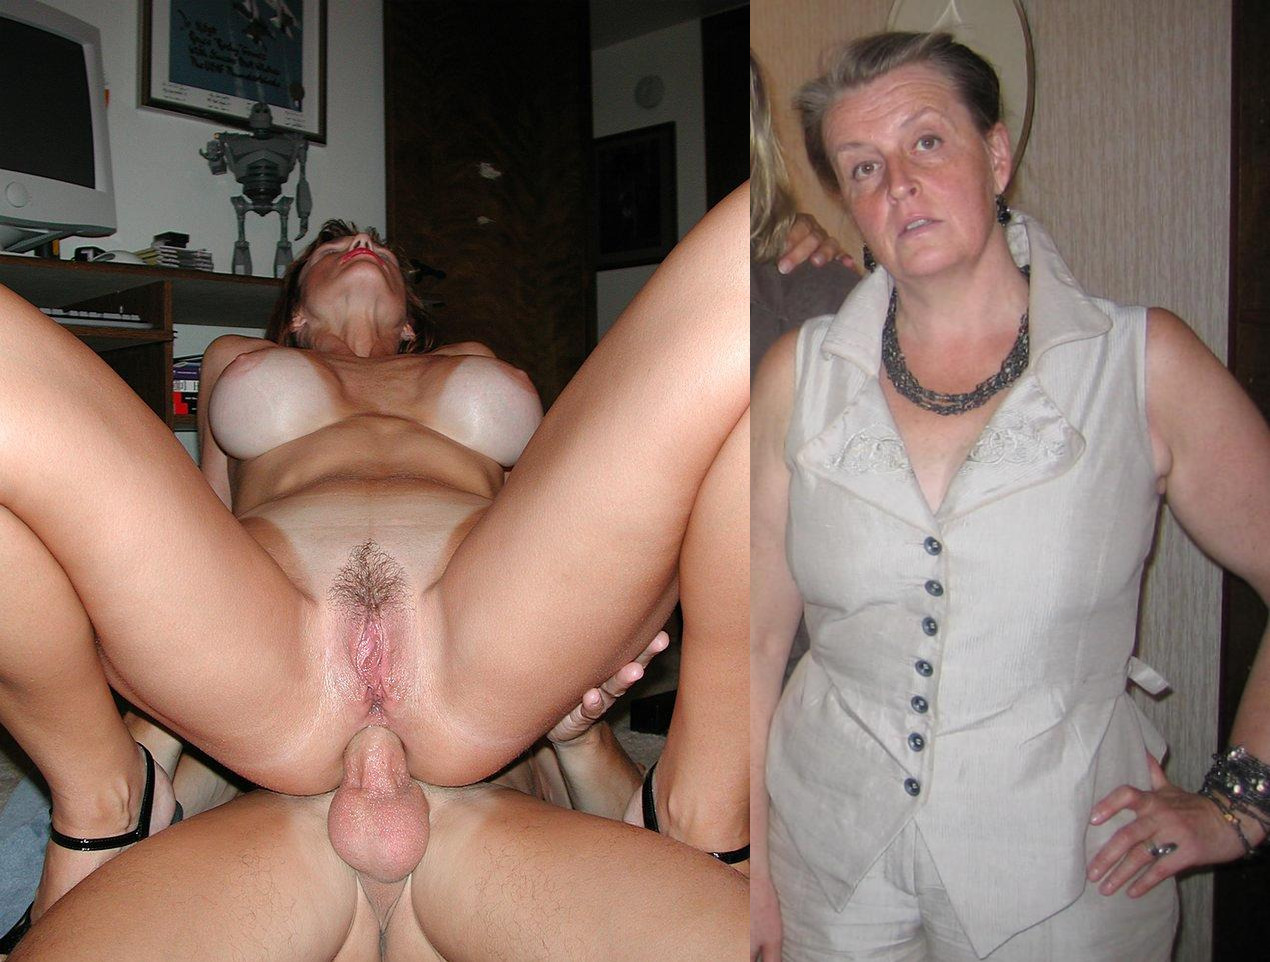 bdsm wife exposed